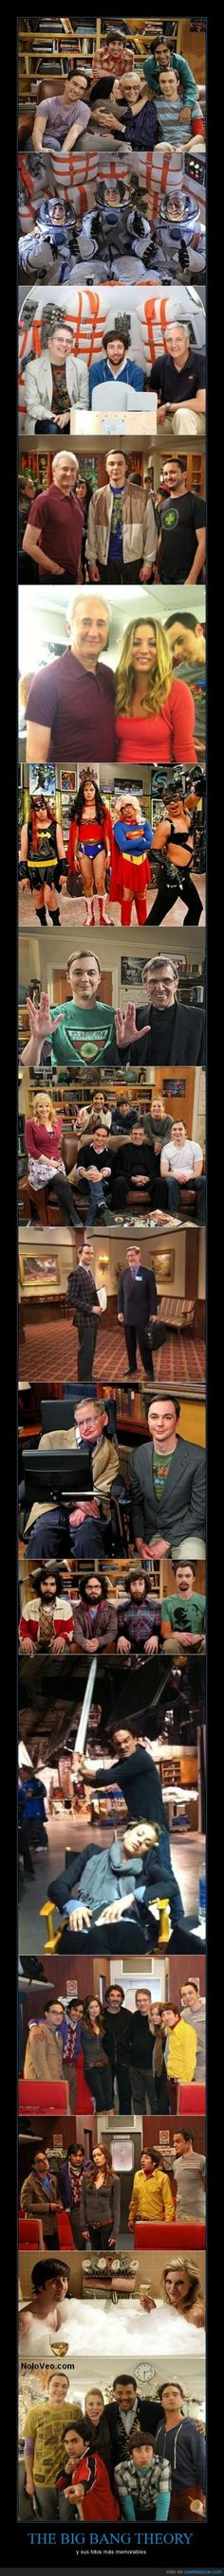 THE BIG BANG THEORY - y sus fotos más memorables